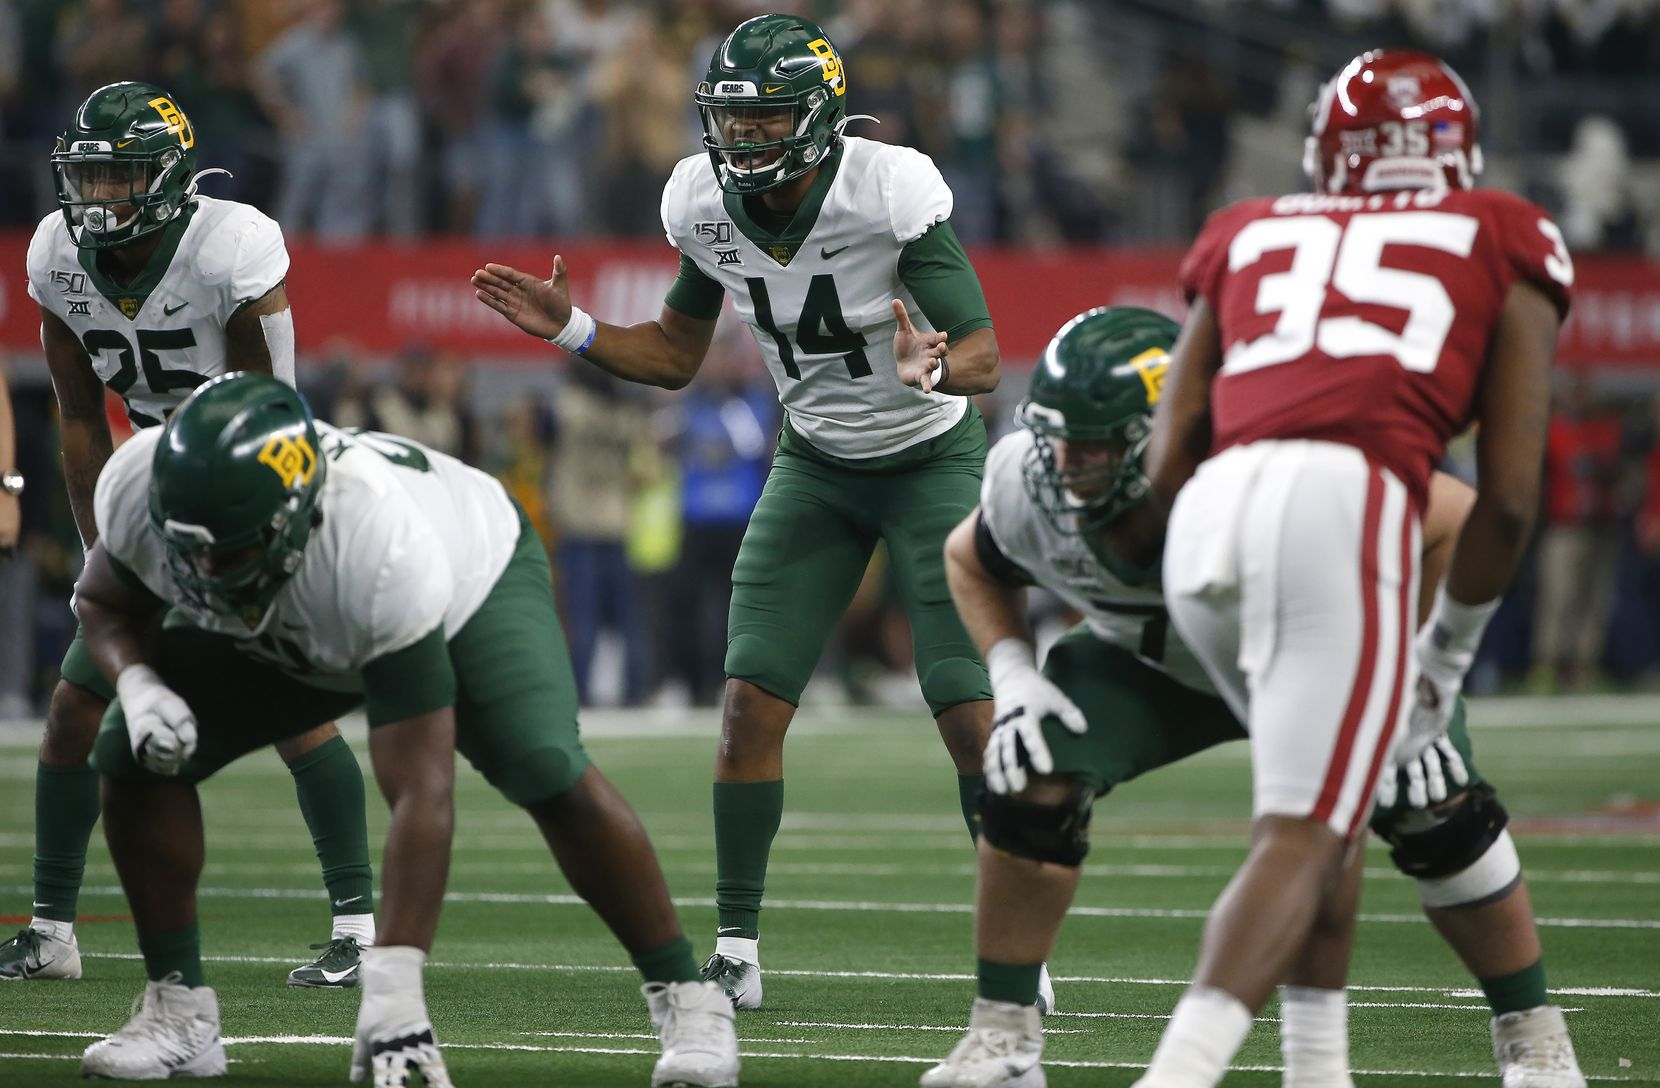 ARLINGTON, TX - DECEMBER 07: Jacob Zeno #14 of the Baylor Bears waits for the snap against the Oklahoma Sooners in the fourth quarter of the Big 12 Football Championship at AT&T Stadium on December 7, 2019 in Arlington, Texas. Oklahoma won 30-23.